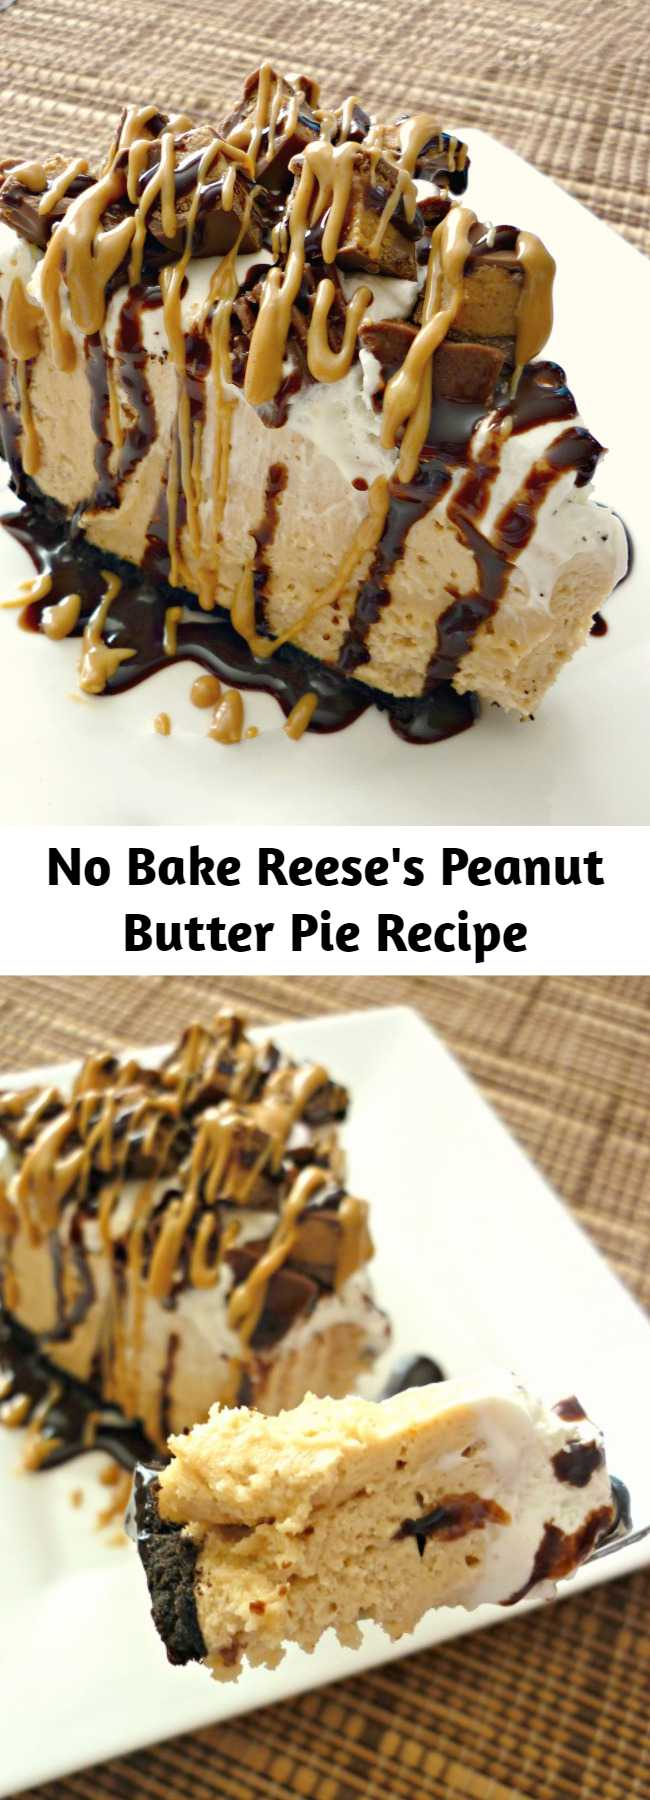 No Bake Reese's Peanut Butter Pie Recipe - This Reese's Peanut Butter Pie is sure to knock your socks off. With a delicious no-bake peanut butter cheesecake filling and topped with Reese's Miniatures, you can't go wrong with this easy dessert.